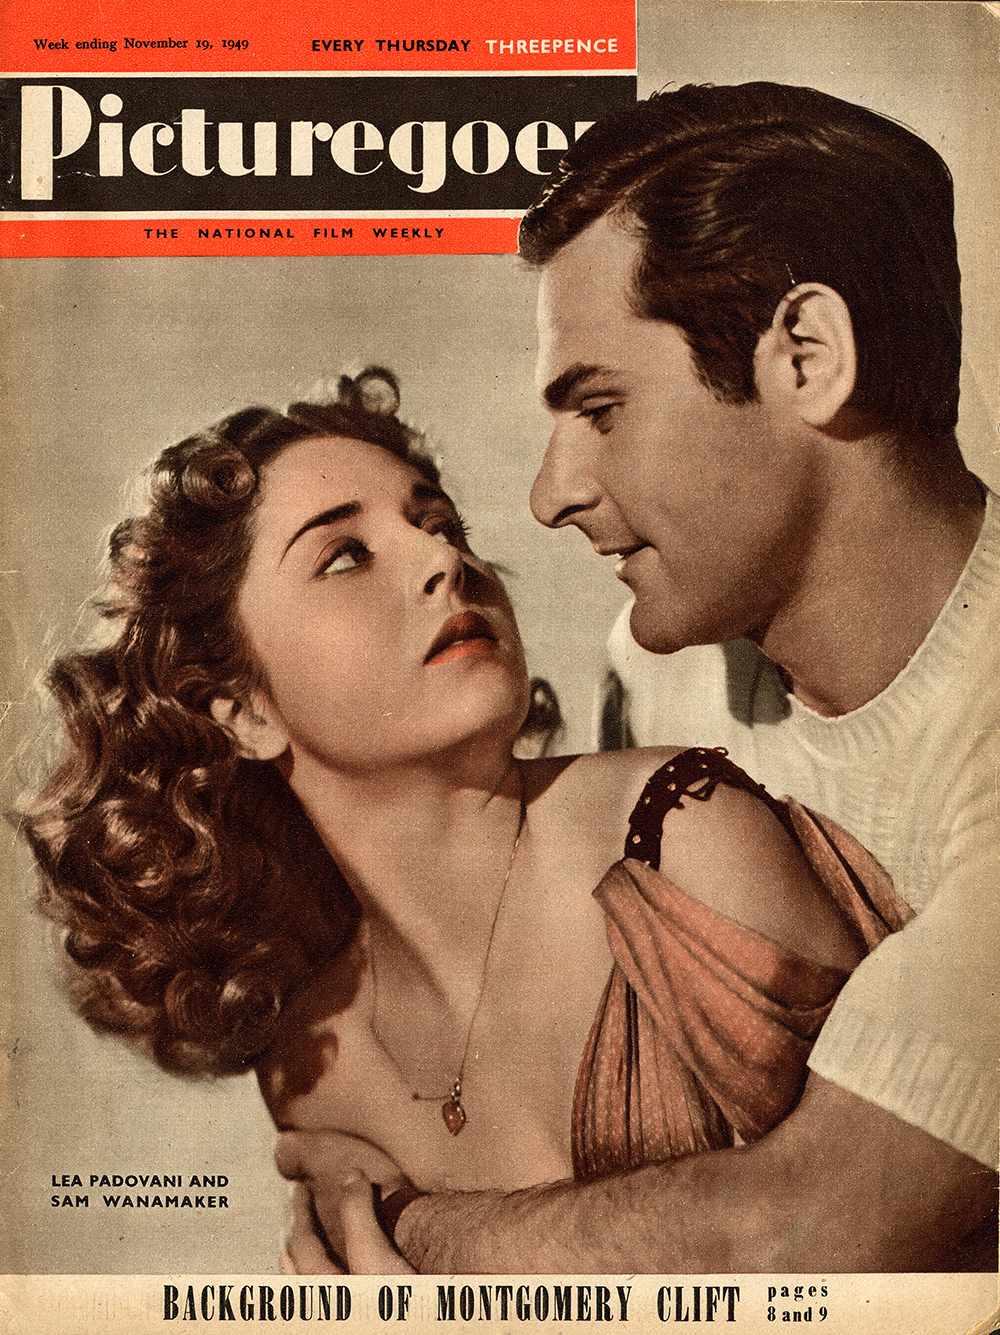 A poster of a woman looking over her shoulder at a man.